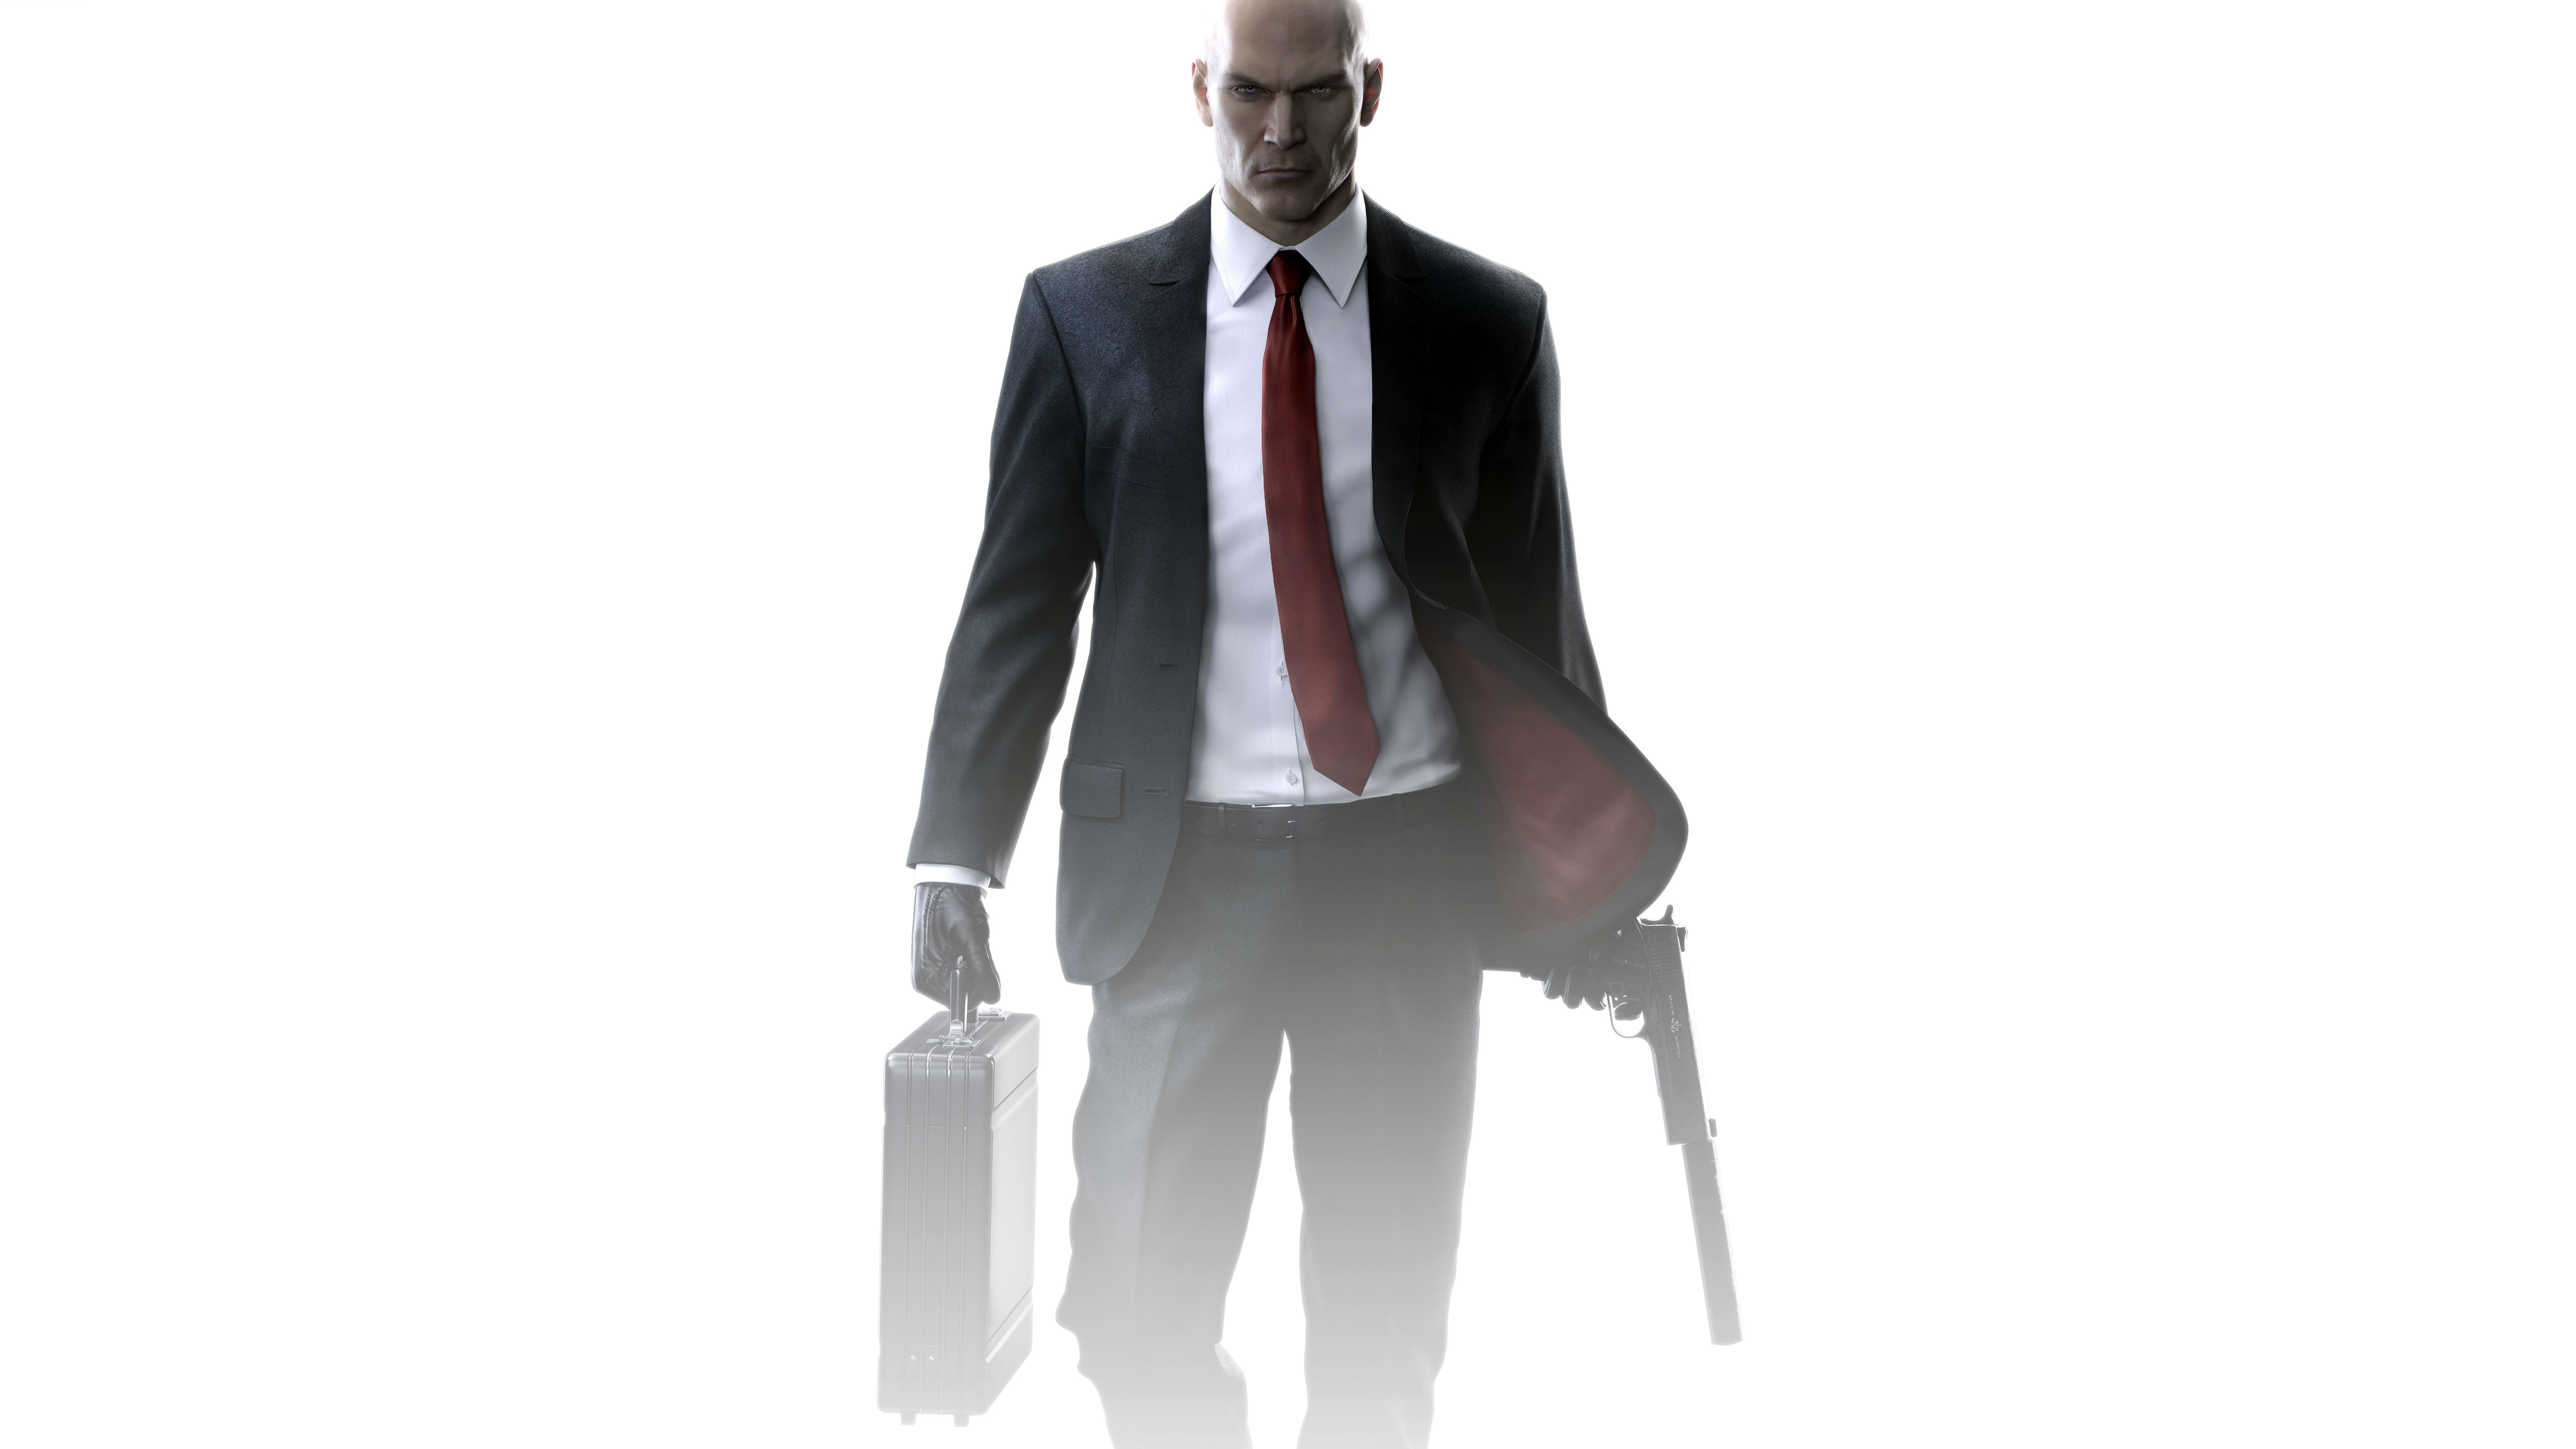 7680x4320 hitman agent 47 game 8k hd 4k wallpapers, images